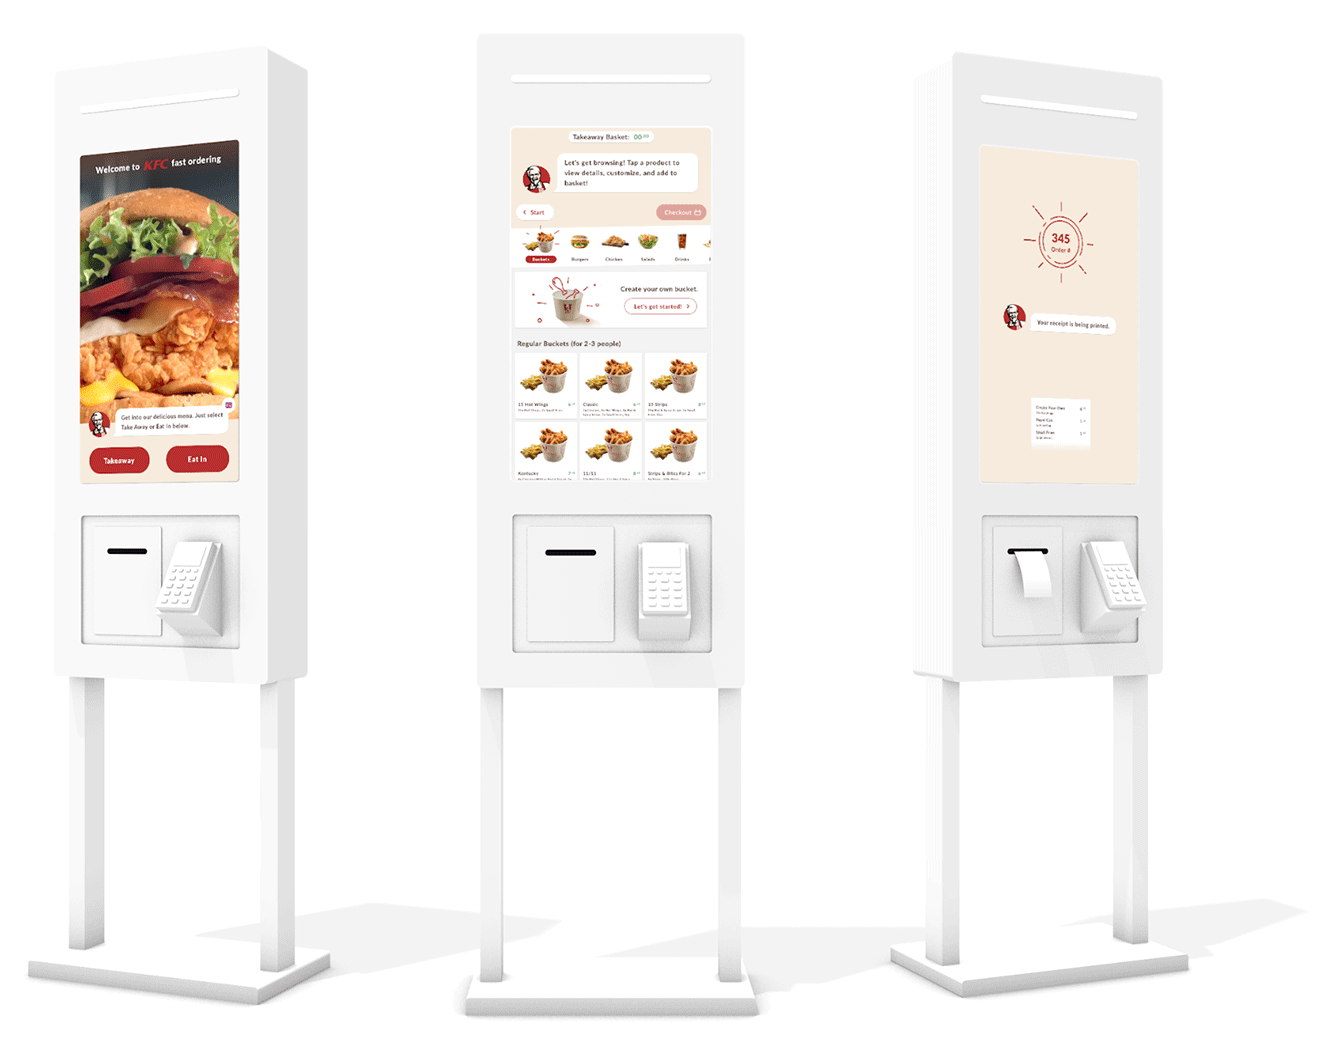 How to Develop Self-Service Kiosks for Food Ordering